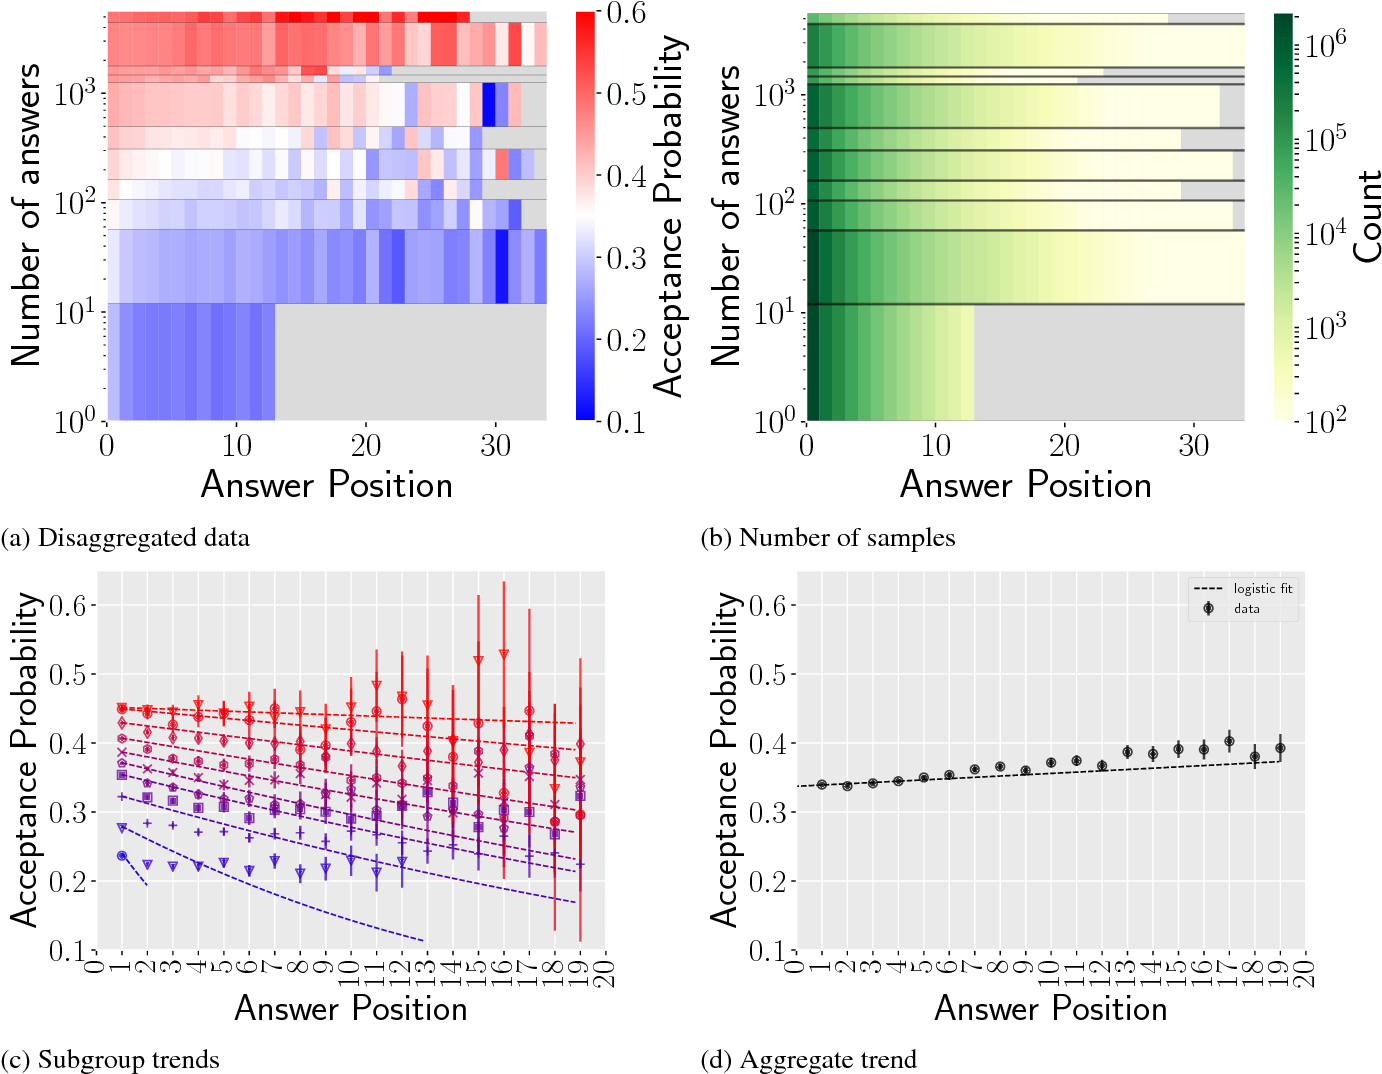 Figure 2 for Using Simpson's Paradox to Discover Interesting Patterns in Behavioral Data